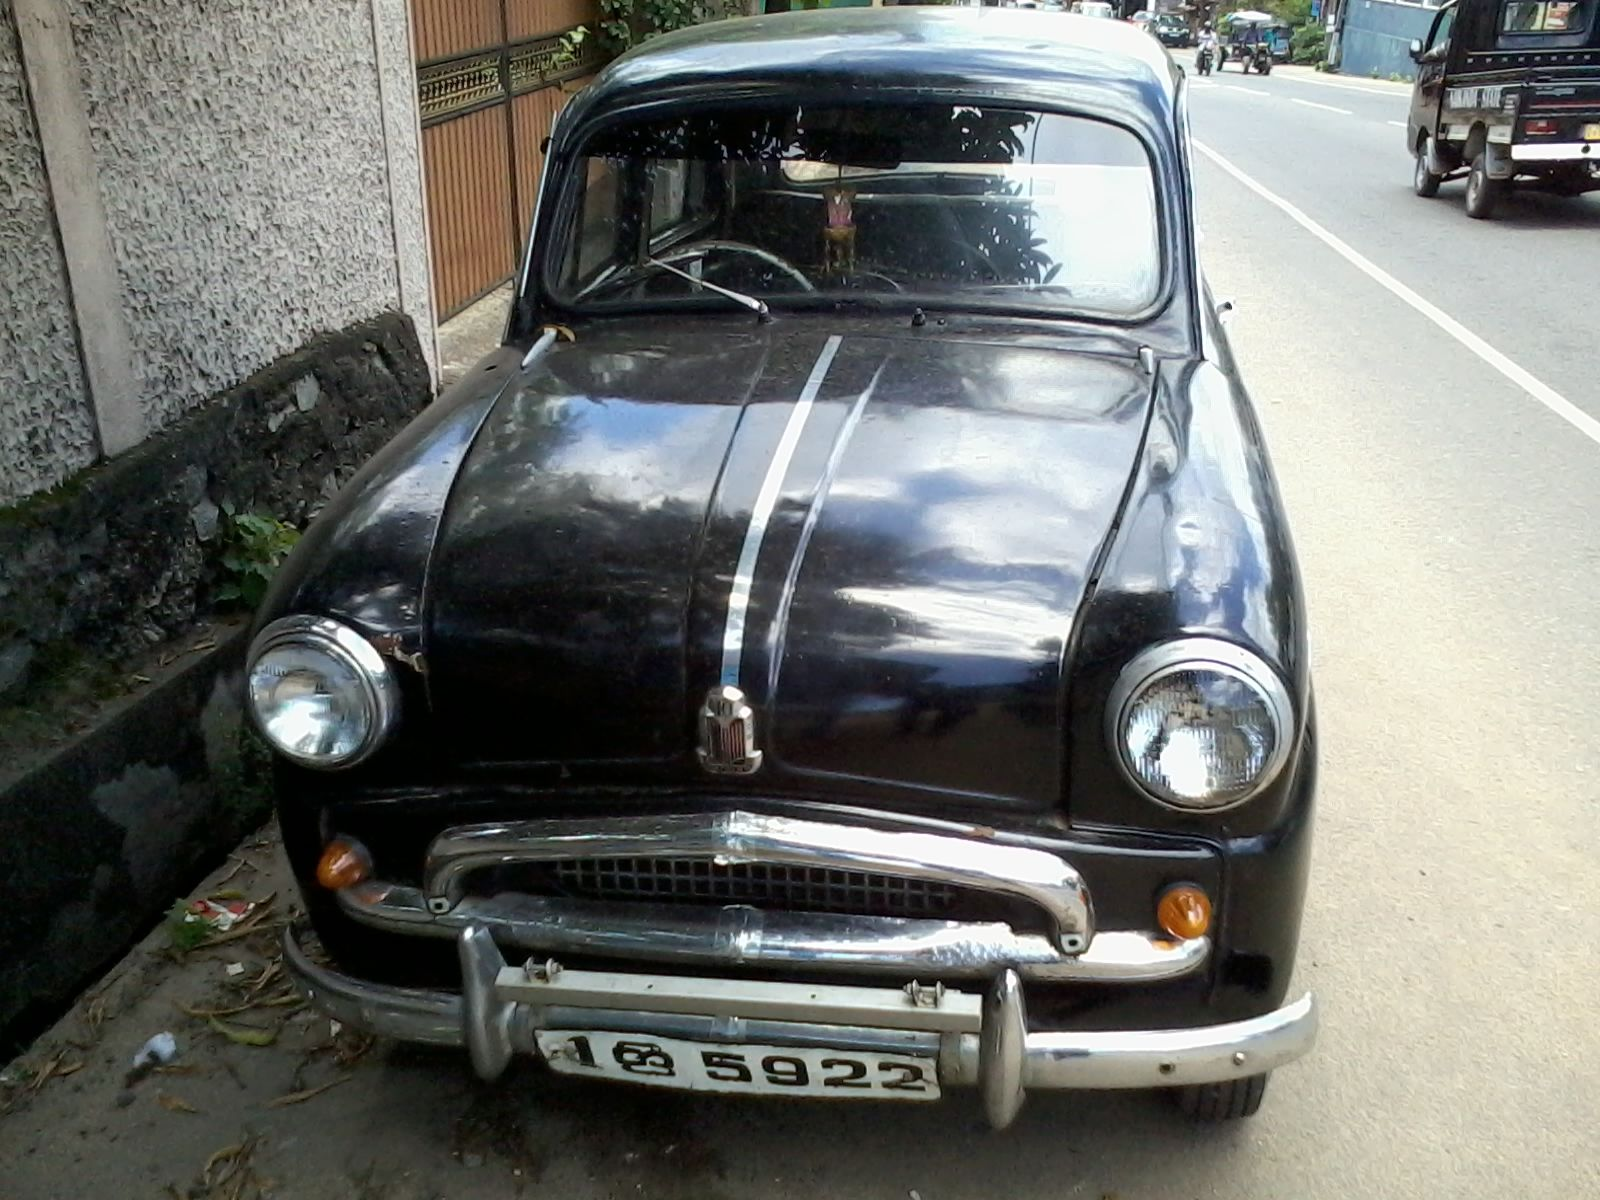 Standard English Car Made in India until the 80s. This was made in ...